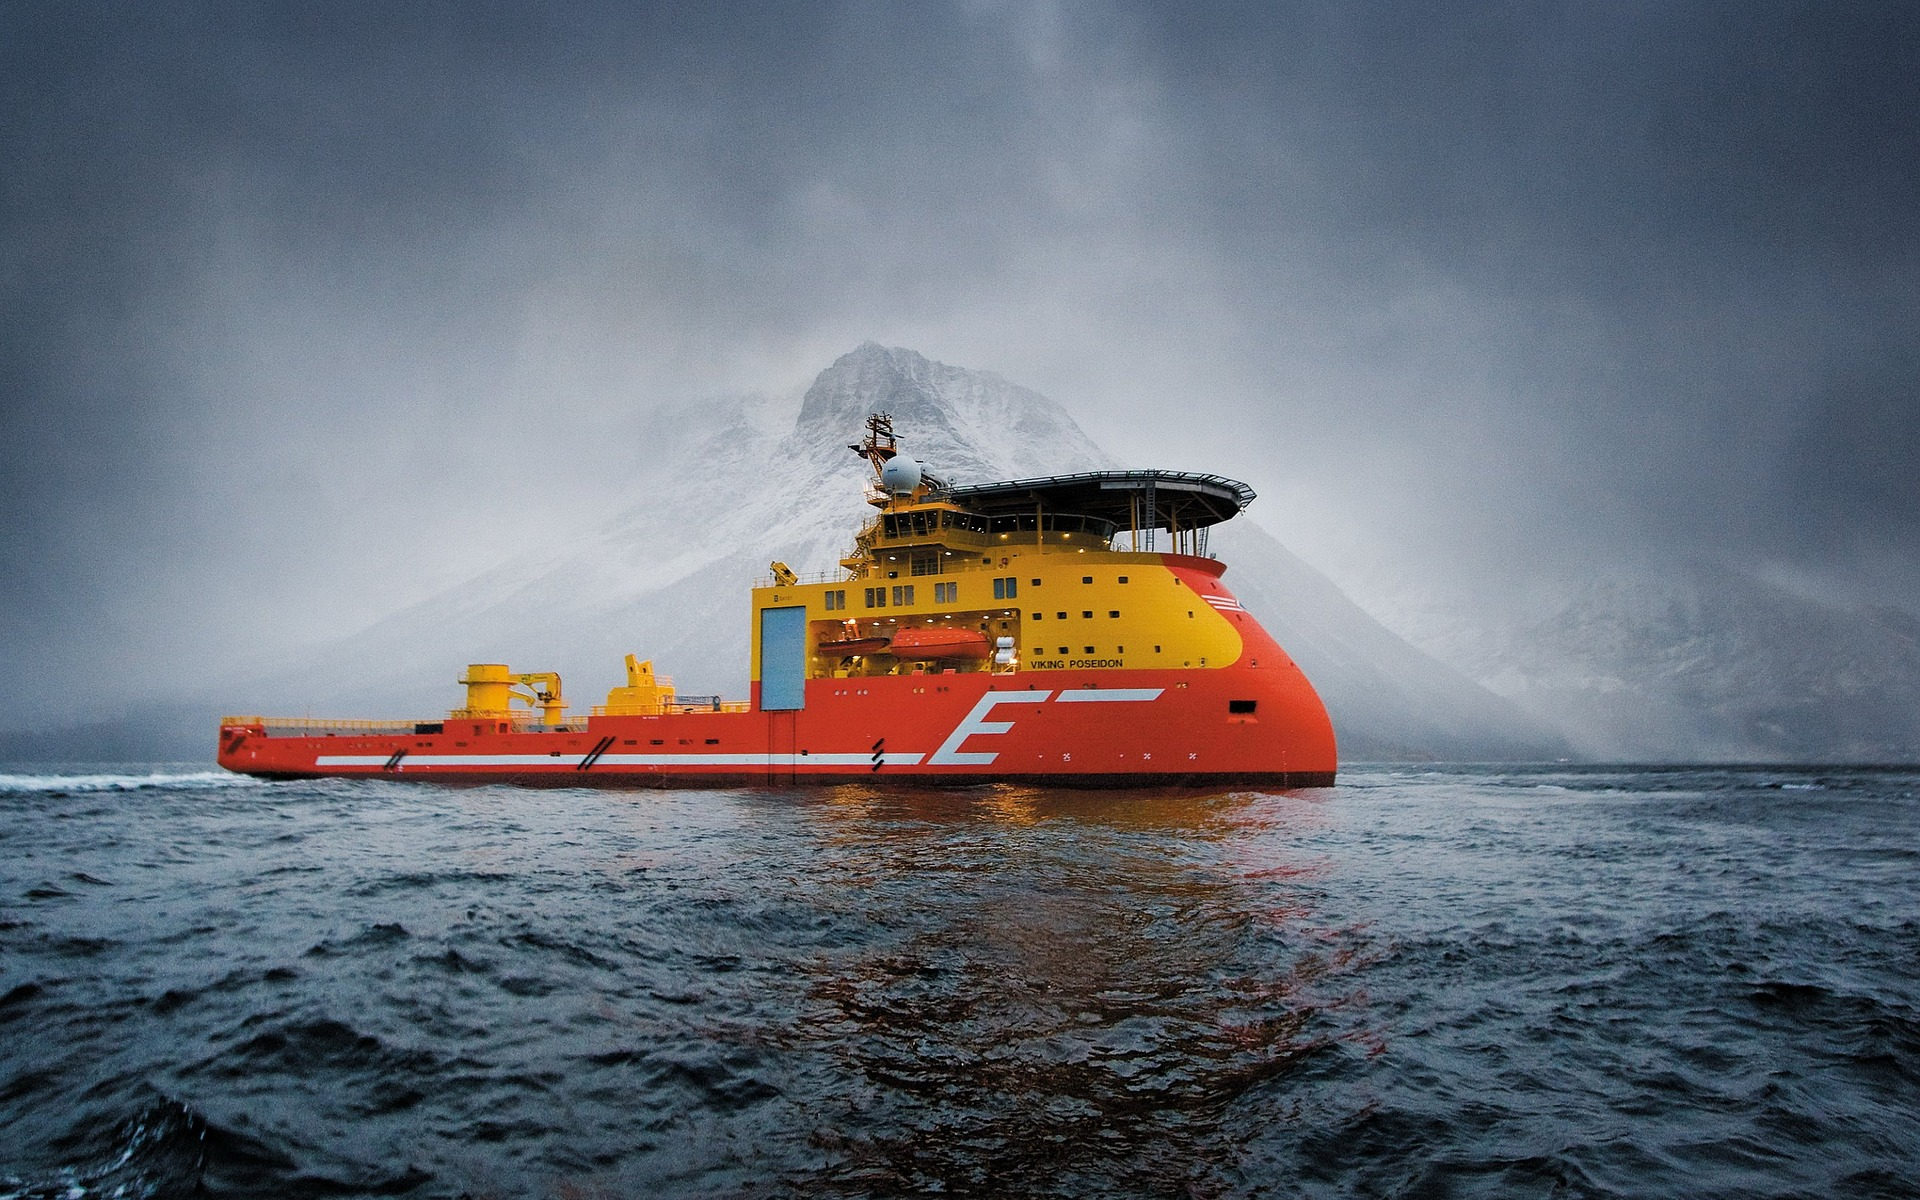 Major Accident Hazard Safety Studies for BW OffShore